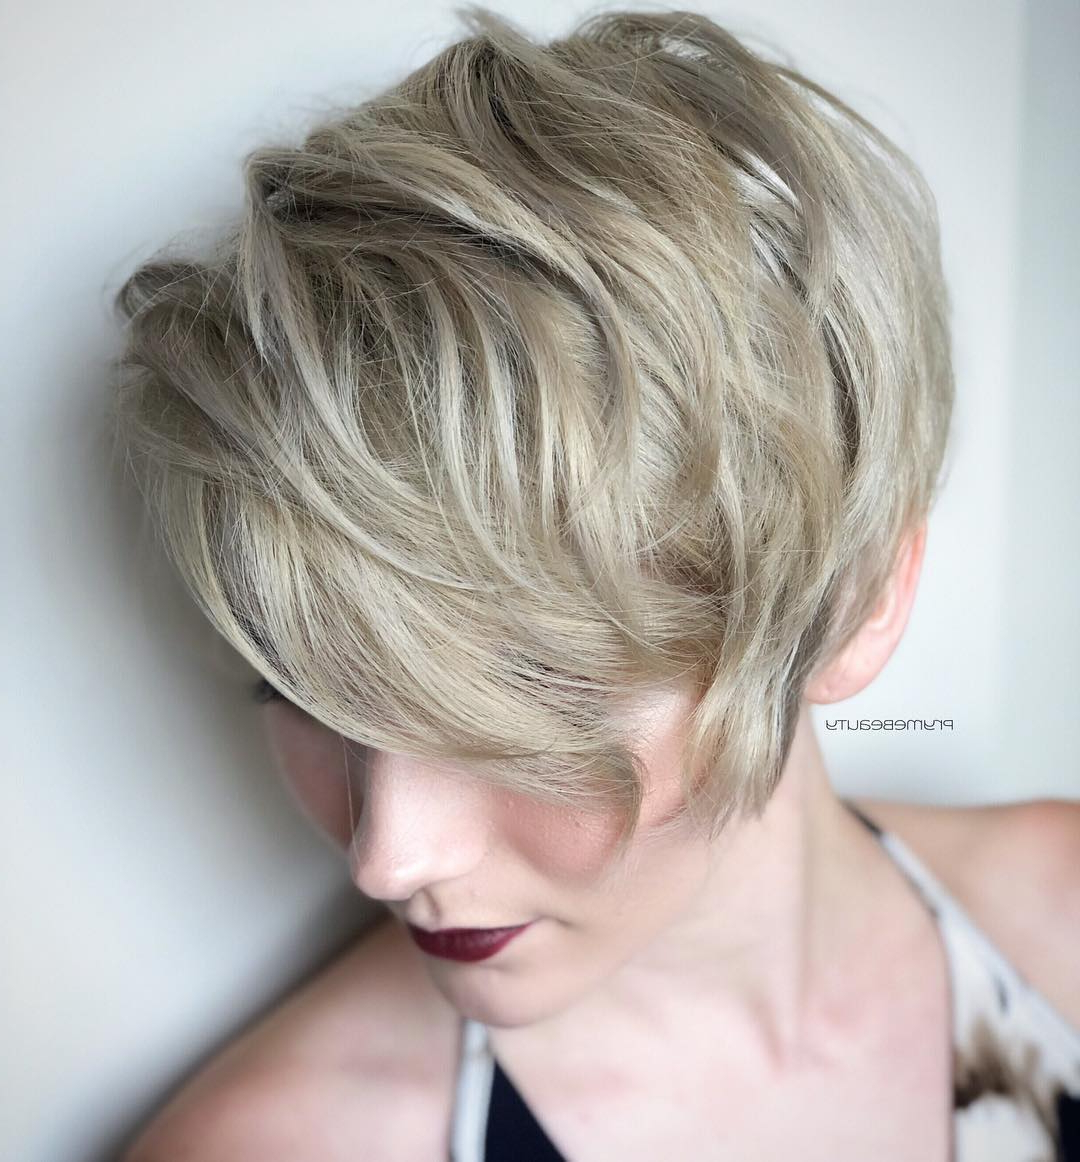 Top 10 Trendy, Low Maintenance Short Layered Hairstyles For 2018 2019 With Long Hair With Short Layers Hairstyles (View 15 of 25)